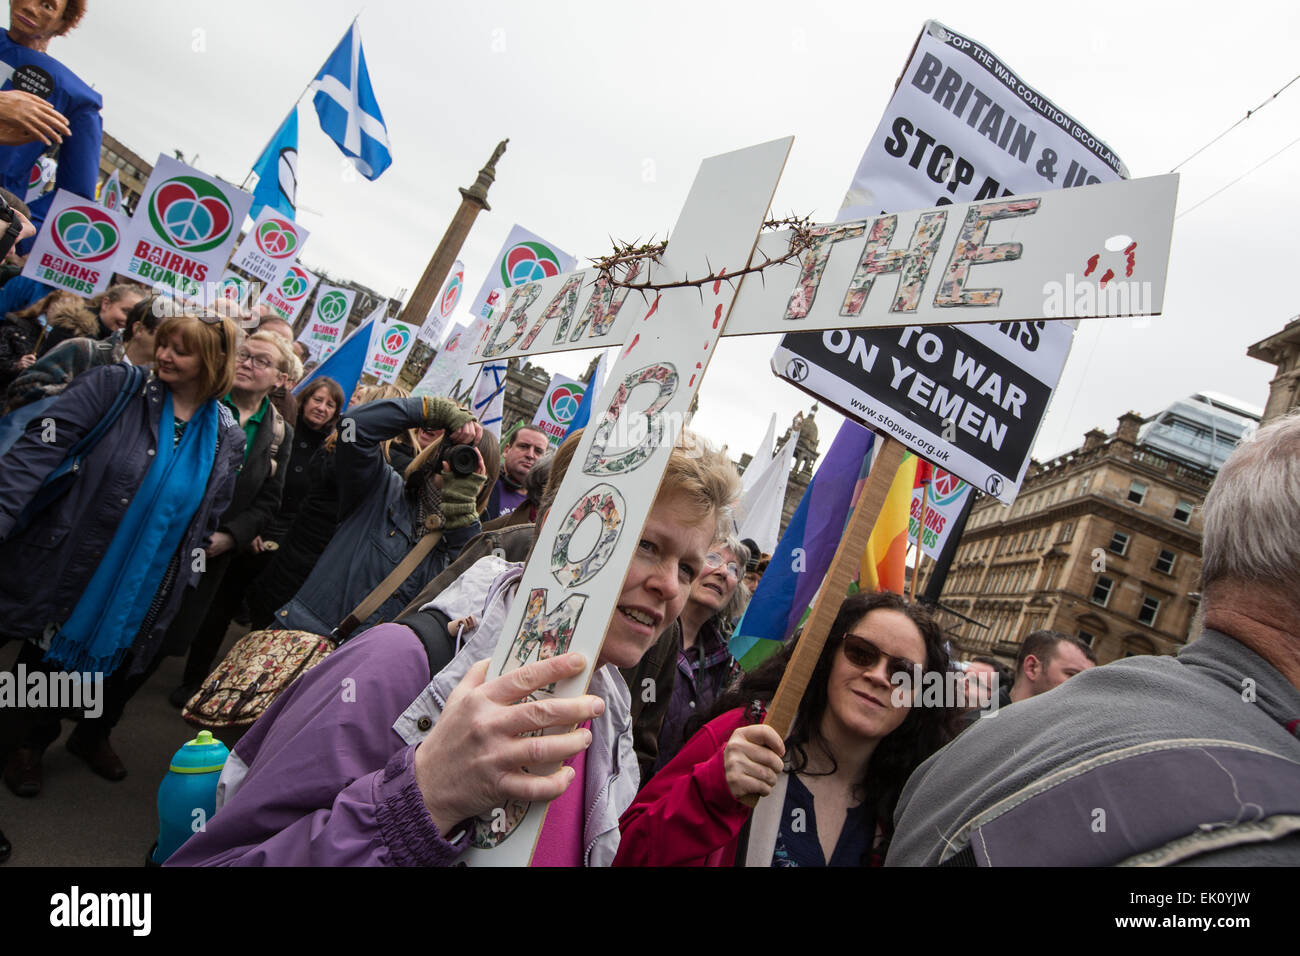 Glasgow, Scotland, UK. 4th April, 2015. An anti-Trident nuclear missile demonstration, at which Nicola Sturgeon, - Stock Image